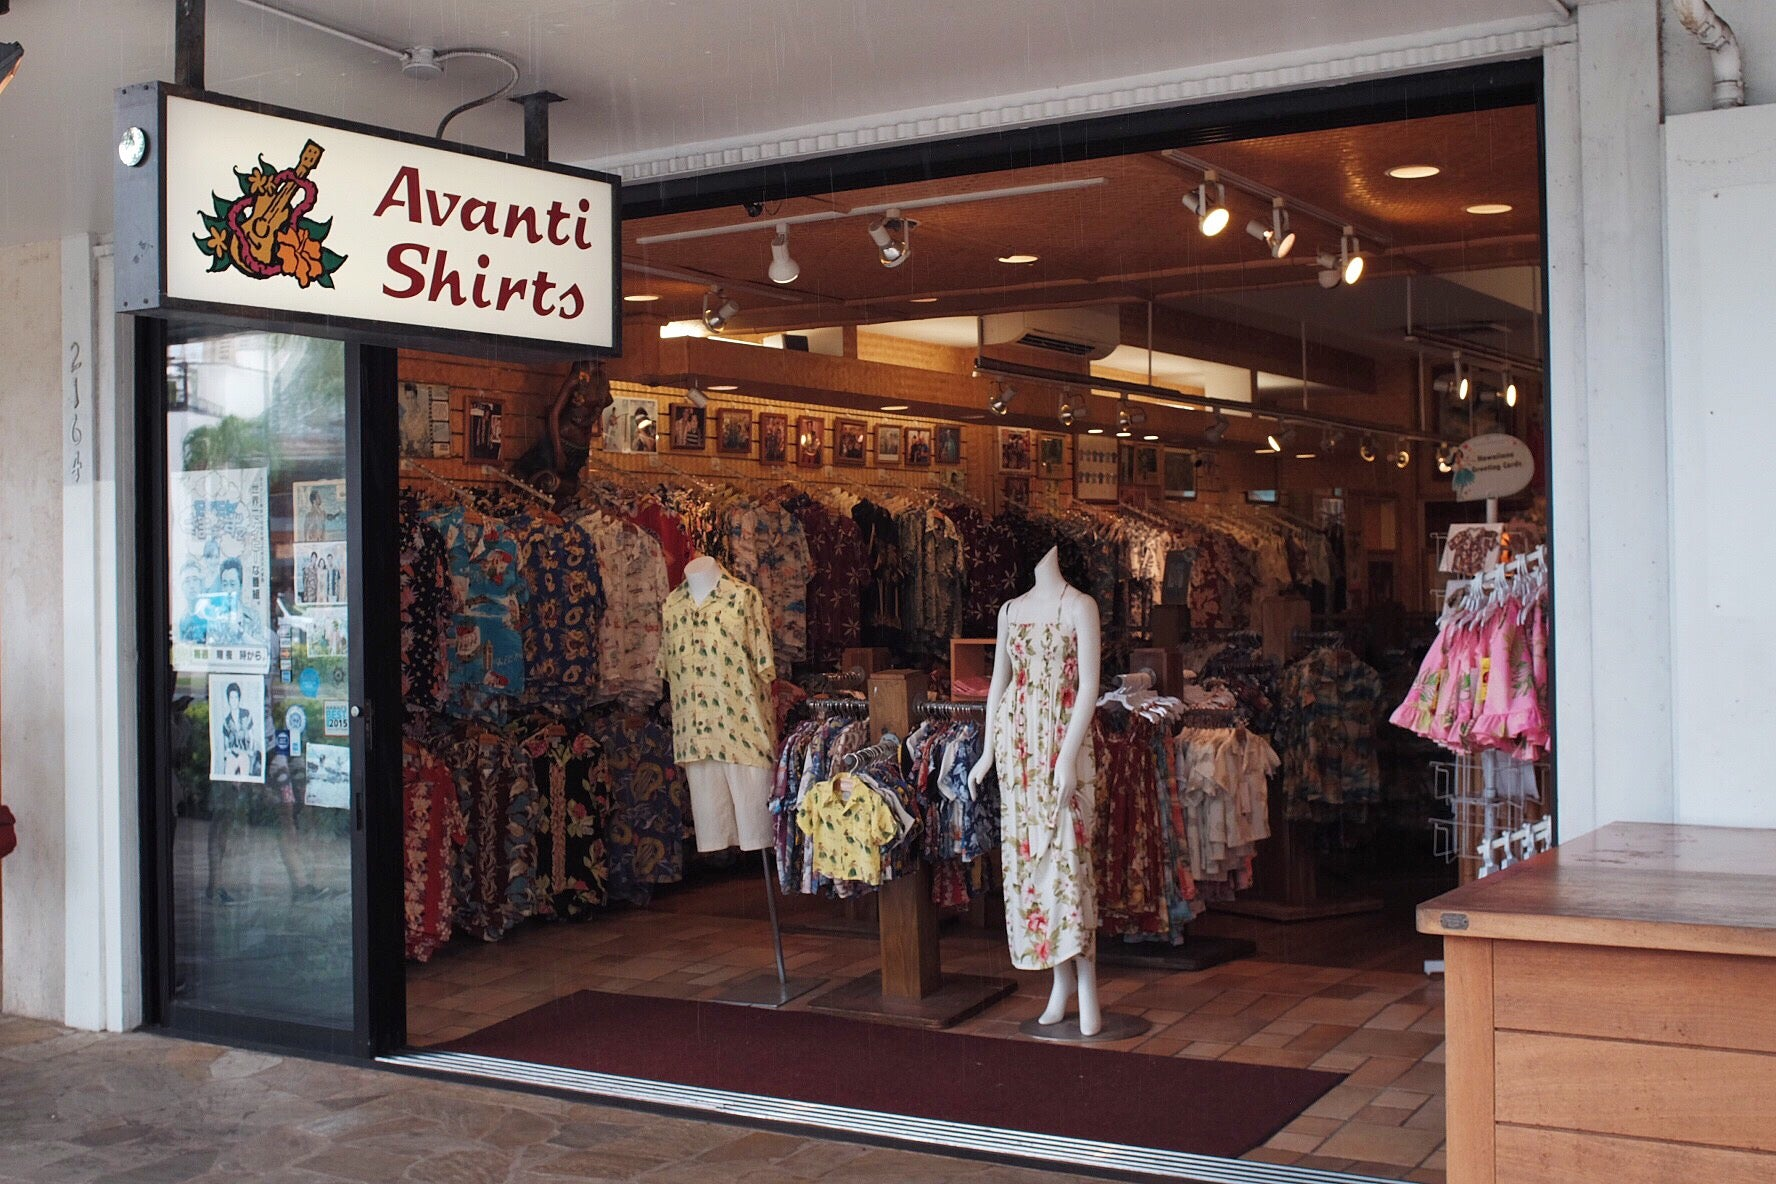 Avanti Shirts Retail Location - Kalakaua